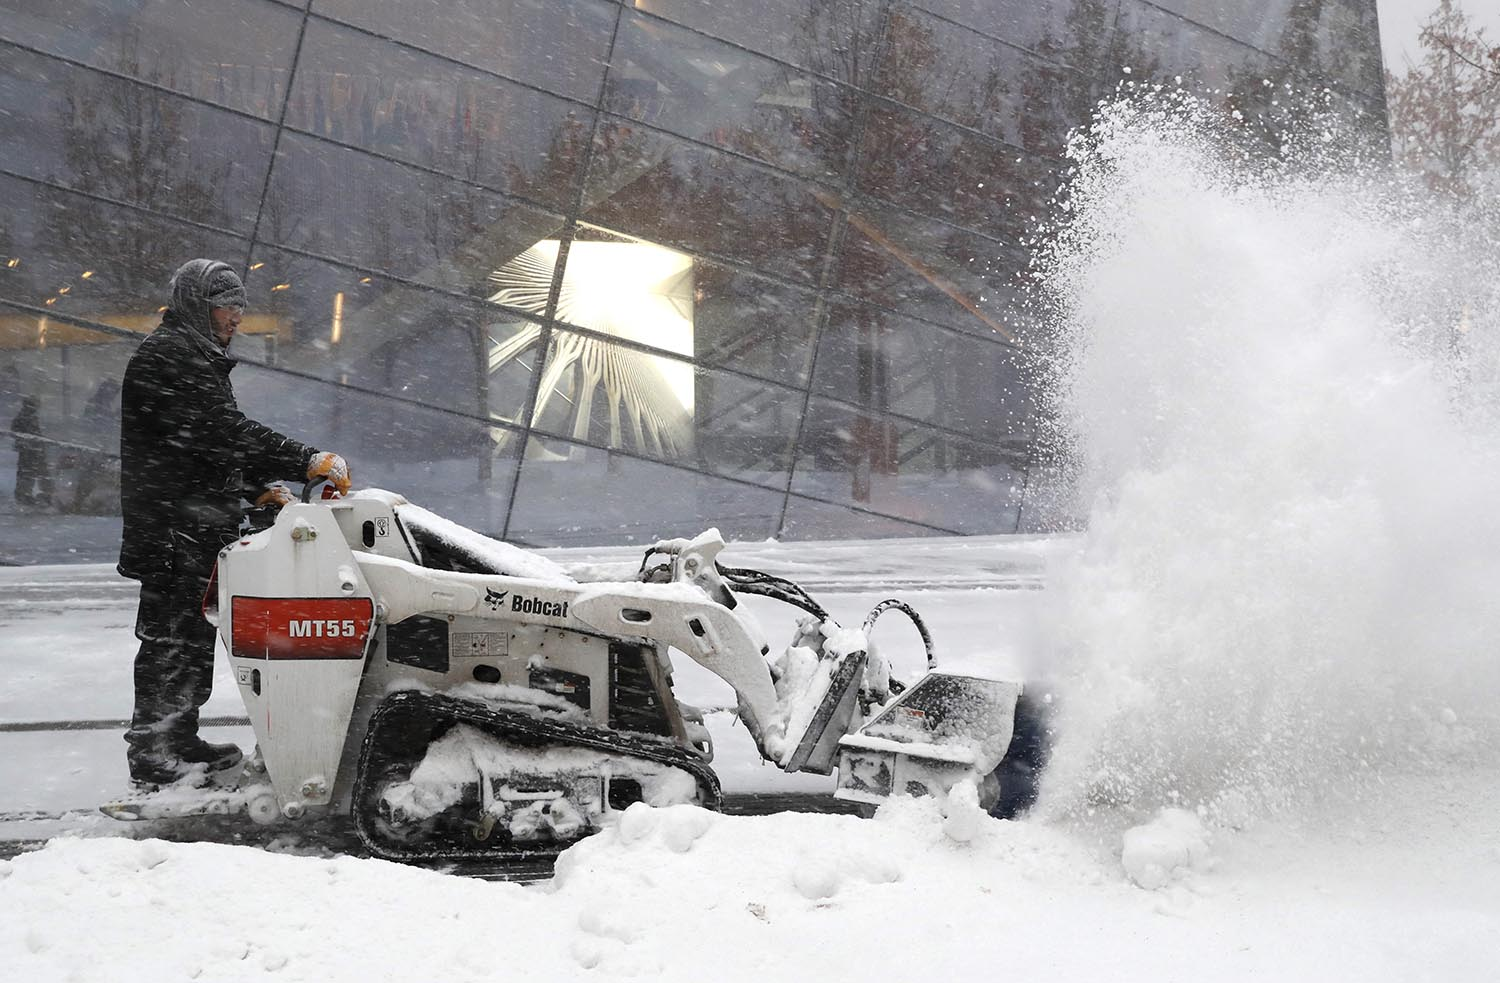 "<div class=""meta image-caption""><div class=""origin-logo origin-image ap""><span>AP</span></div><span class=""caption-text"">A worker clears snow in front of the National September 11 Memorial and Museum in New York, Thursday morning, Jan. 4, 2018. (AP Photo/Kathy Willens)</span></div>"